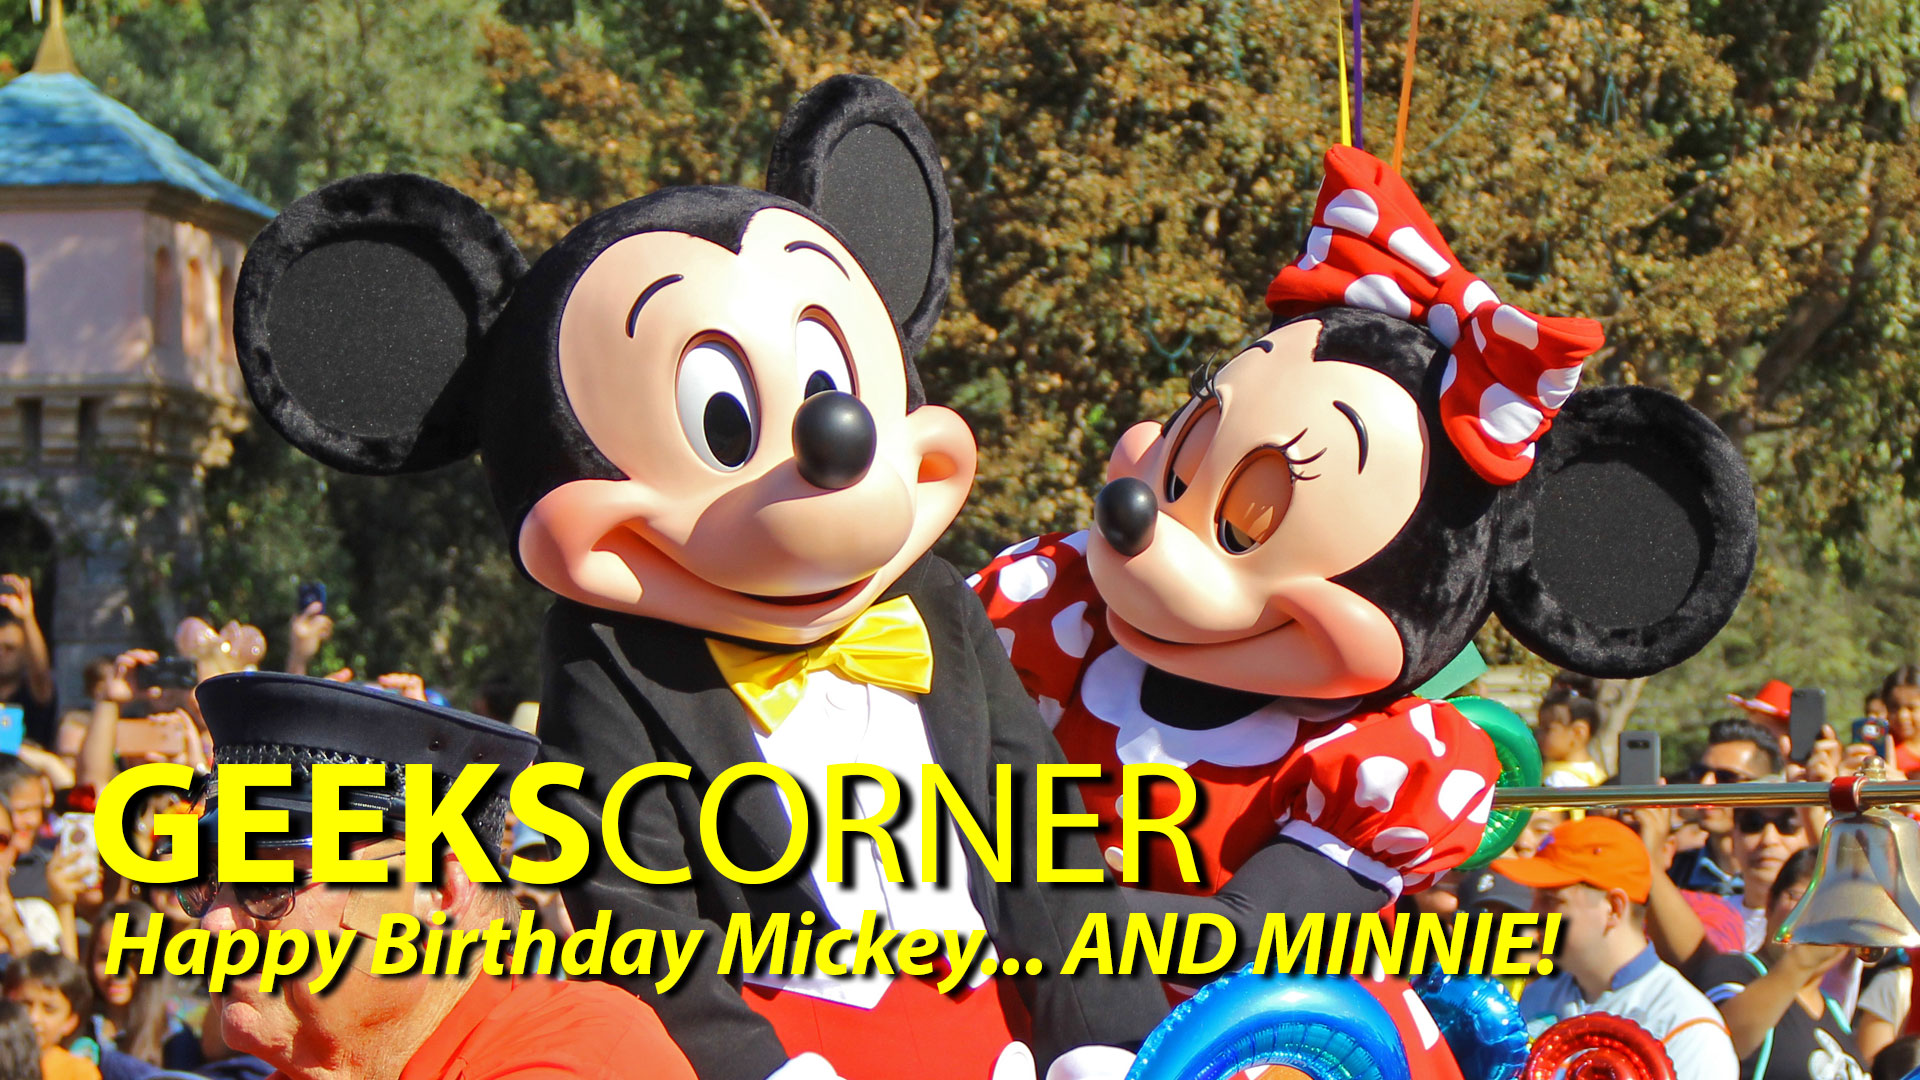 Happy Birthday Mickey... AND MINNIE! - GEEKS CORNER - Episode 808